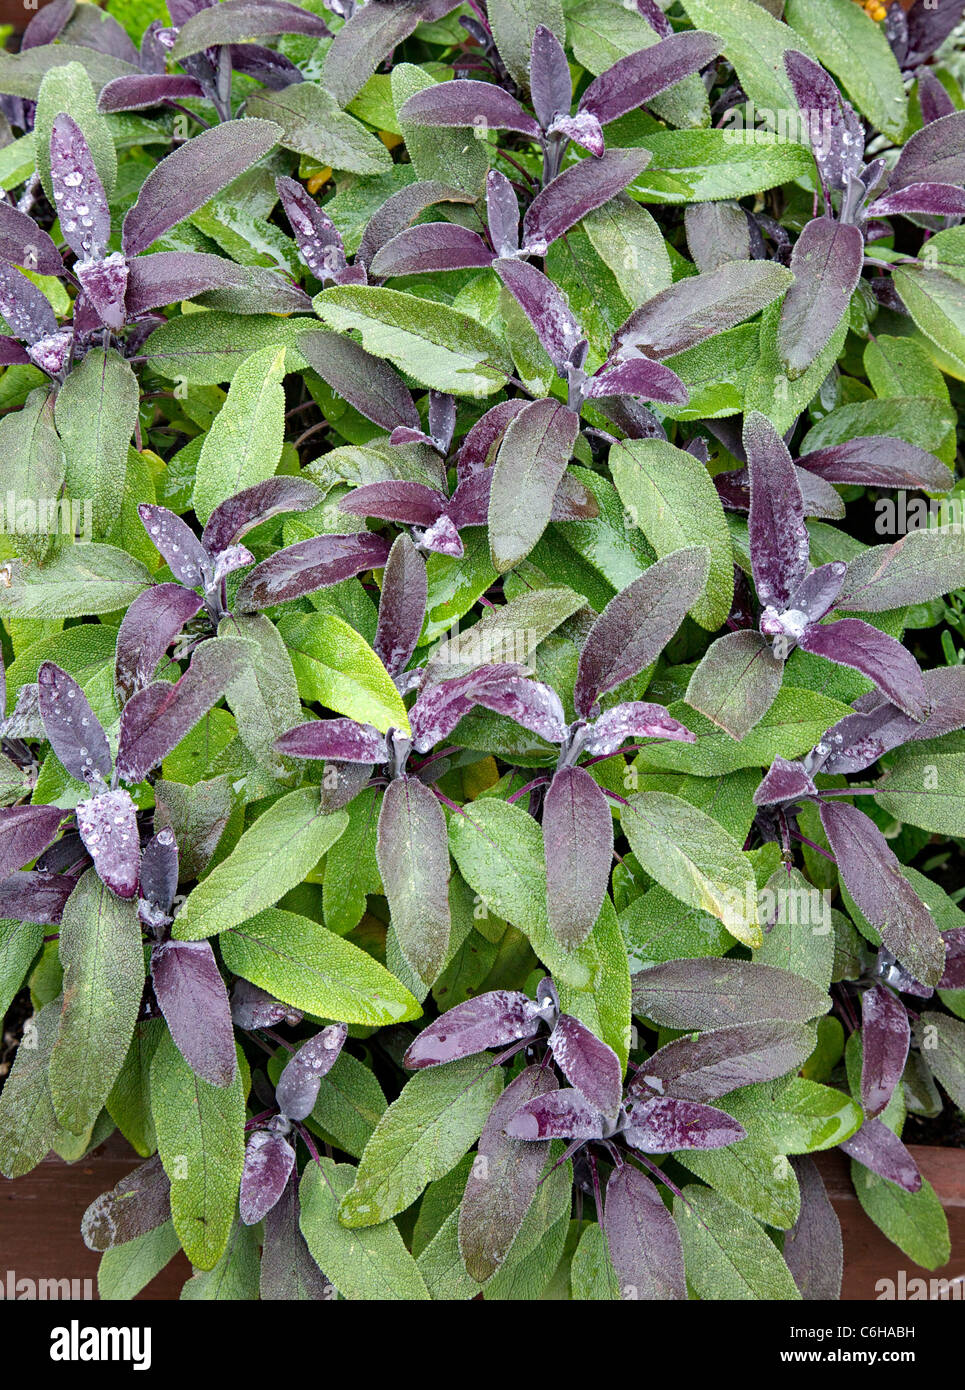 Purple leaved Sage Salvia officinalis is a culnary and medicinal herb here growing in an English herb garden - Stock Image